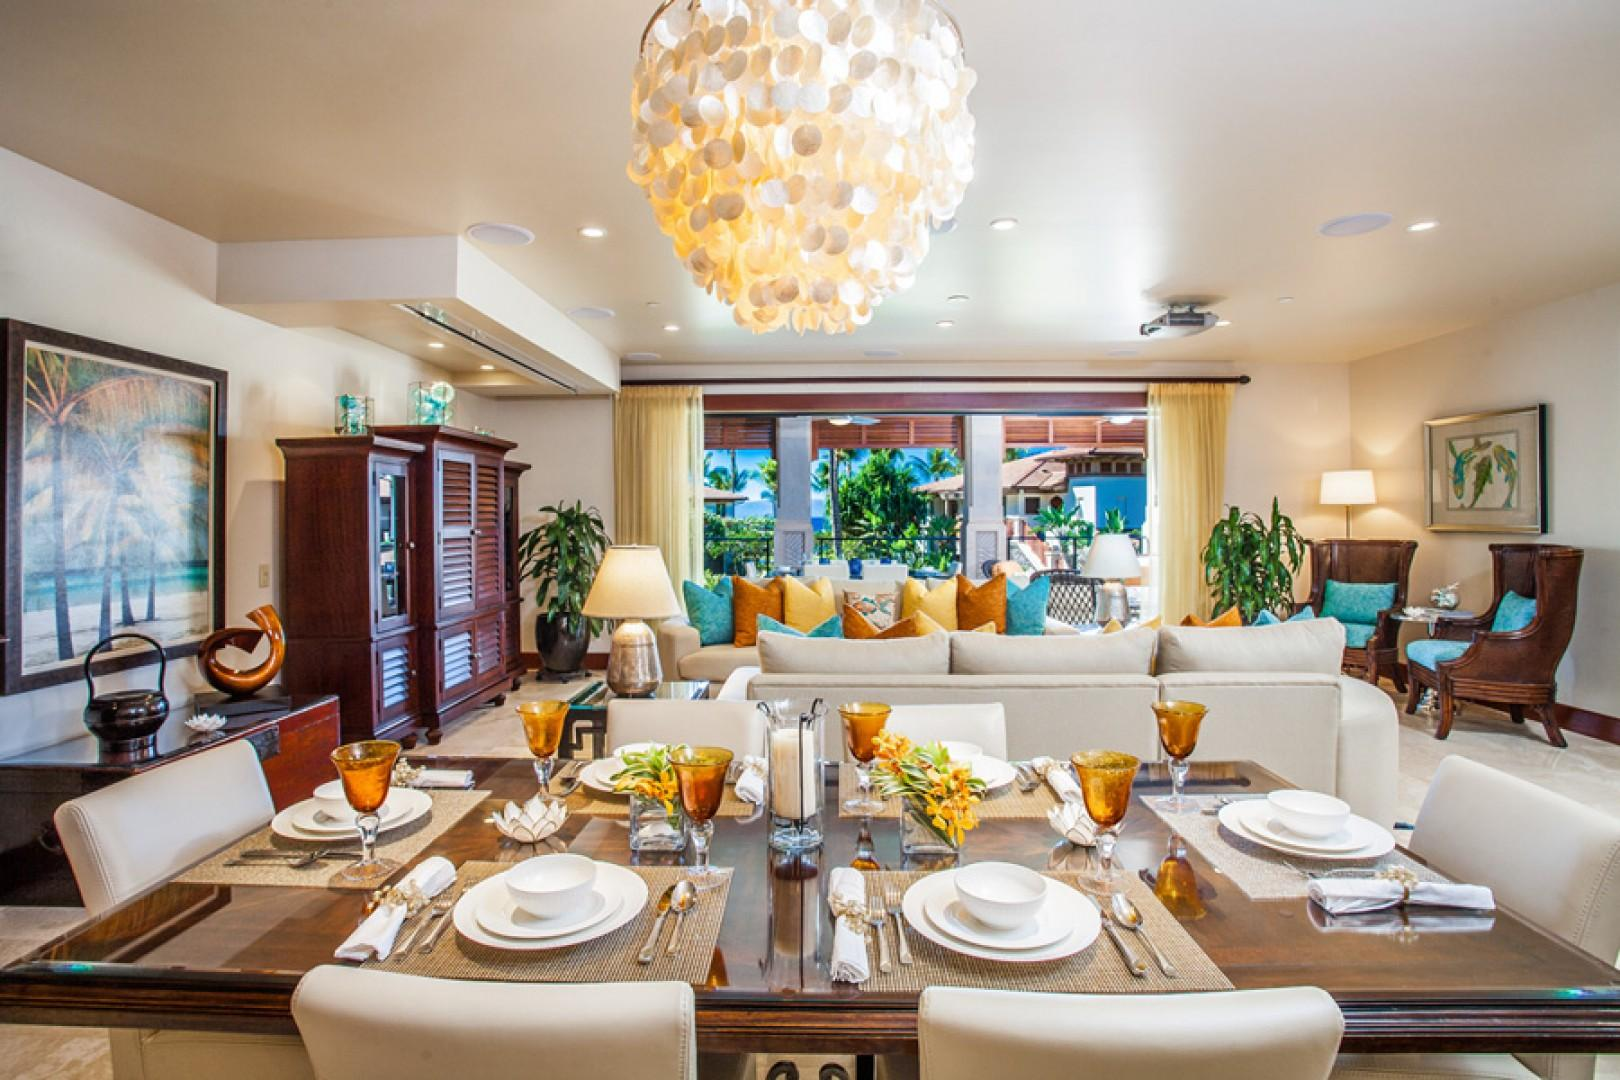 Castaway Cove C201 - Spacious Ocean View Great Room and Dining with Entertainment Center and Alfresco Terrace